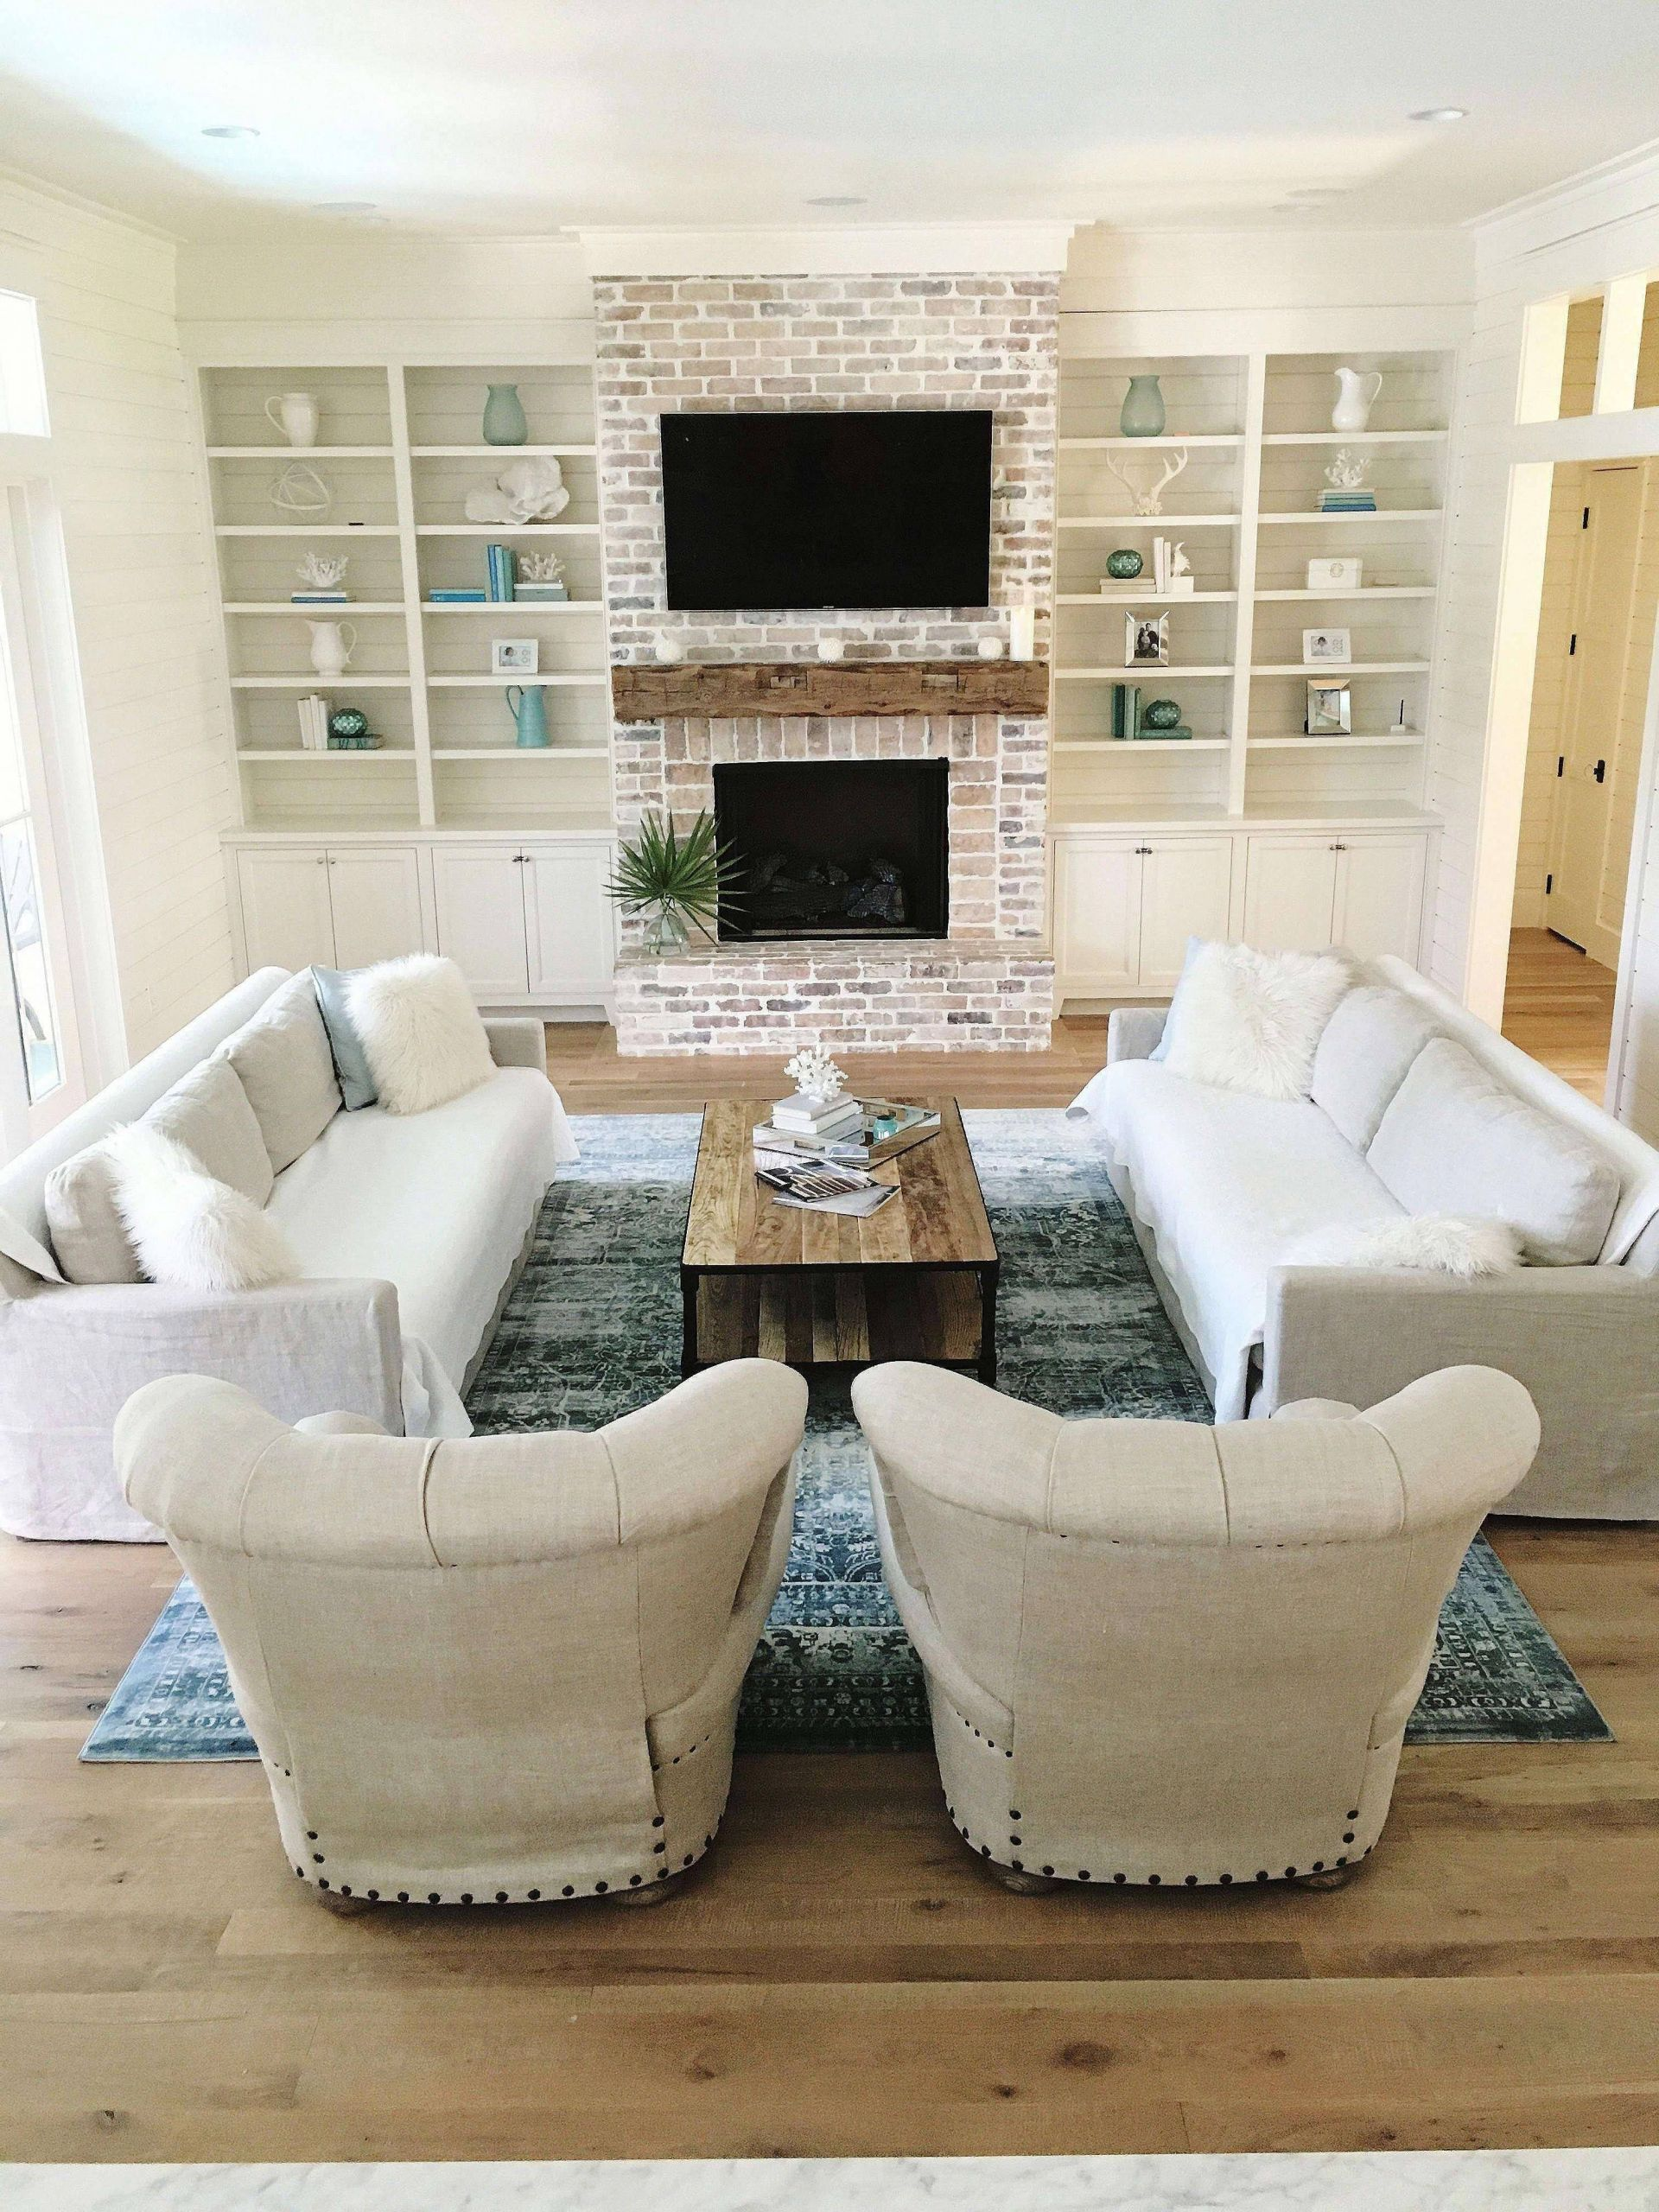 excellent image of ideas for furniture in living room rustic sofa table ideas new modern living room furniture new gunstige sofa macys furniture 0d of rustic sofa table ideas